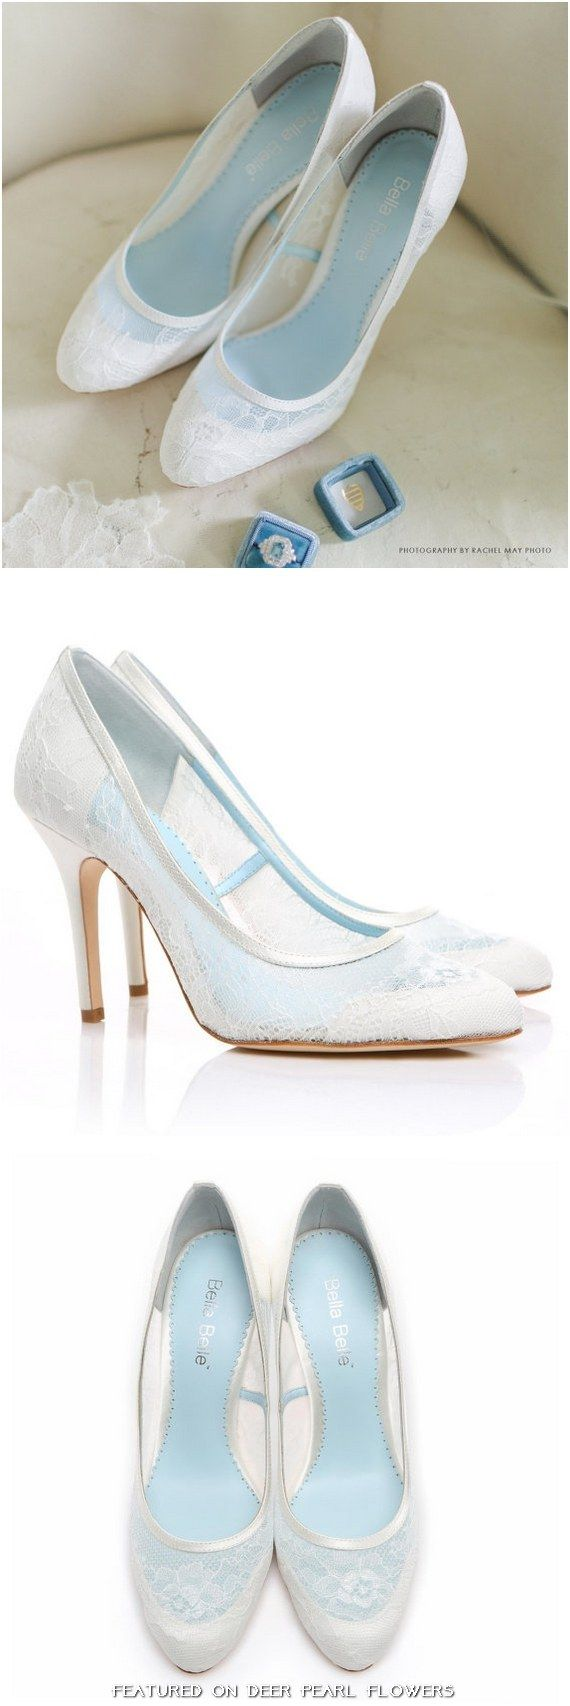 Chantilly Lace Wedding Shoes Closed Toe Pumps / http://www.deerpearlflowers.com/vintage-lace-wedding-shoes/2/